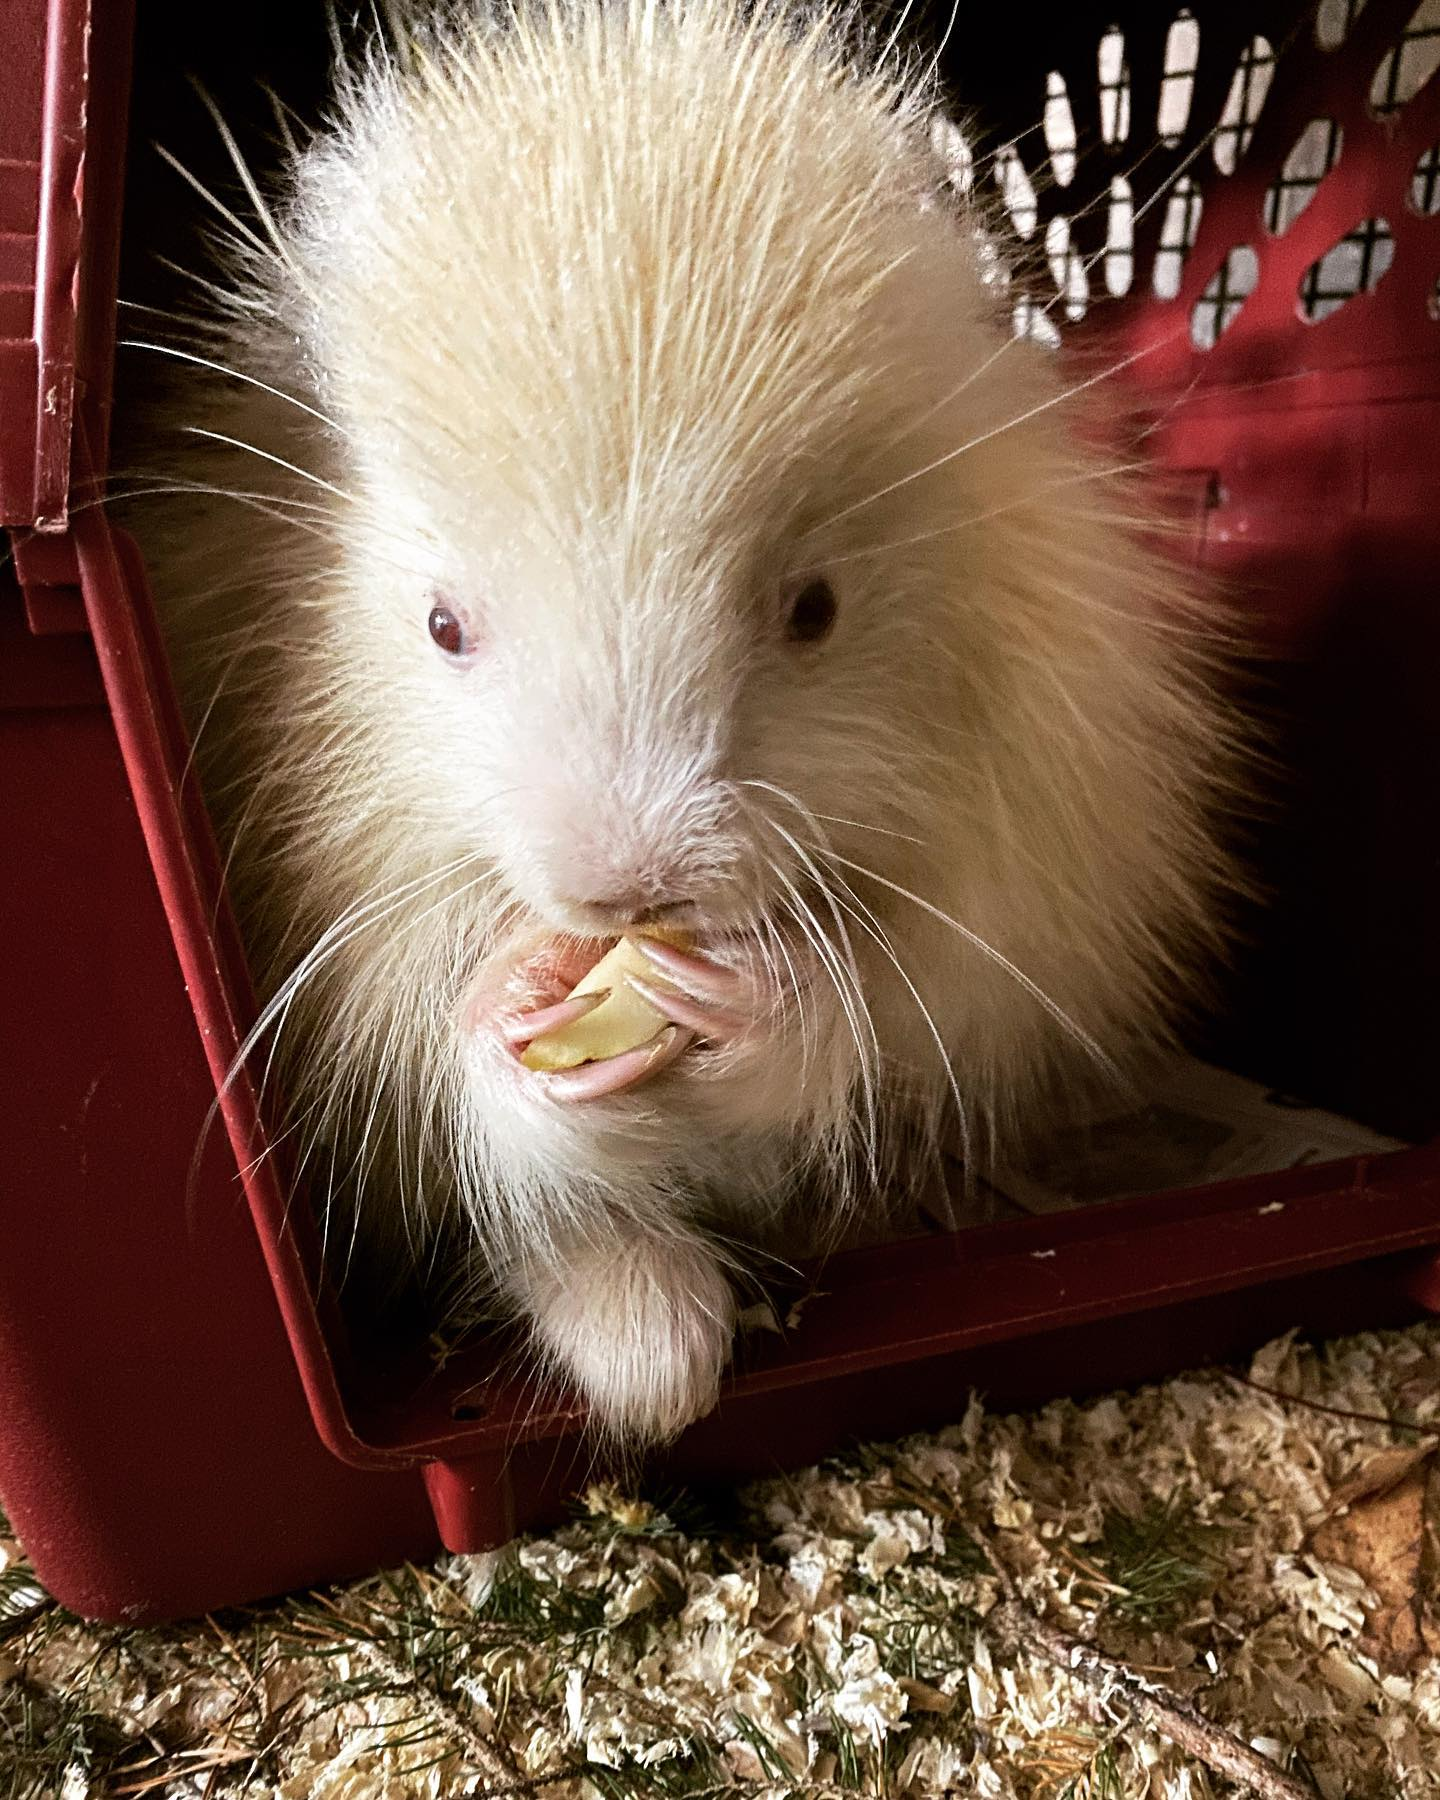 A close-up of an albino porcupine eating. Image courtesy Leah Valerio.